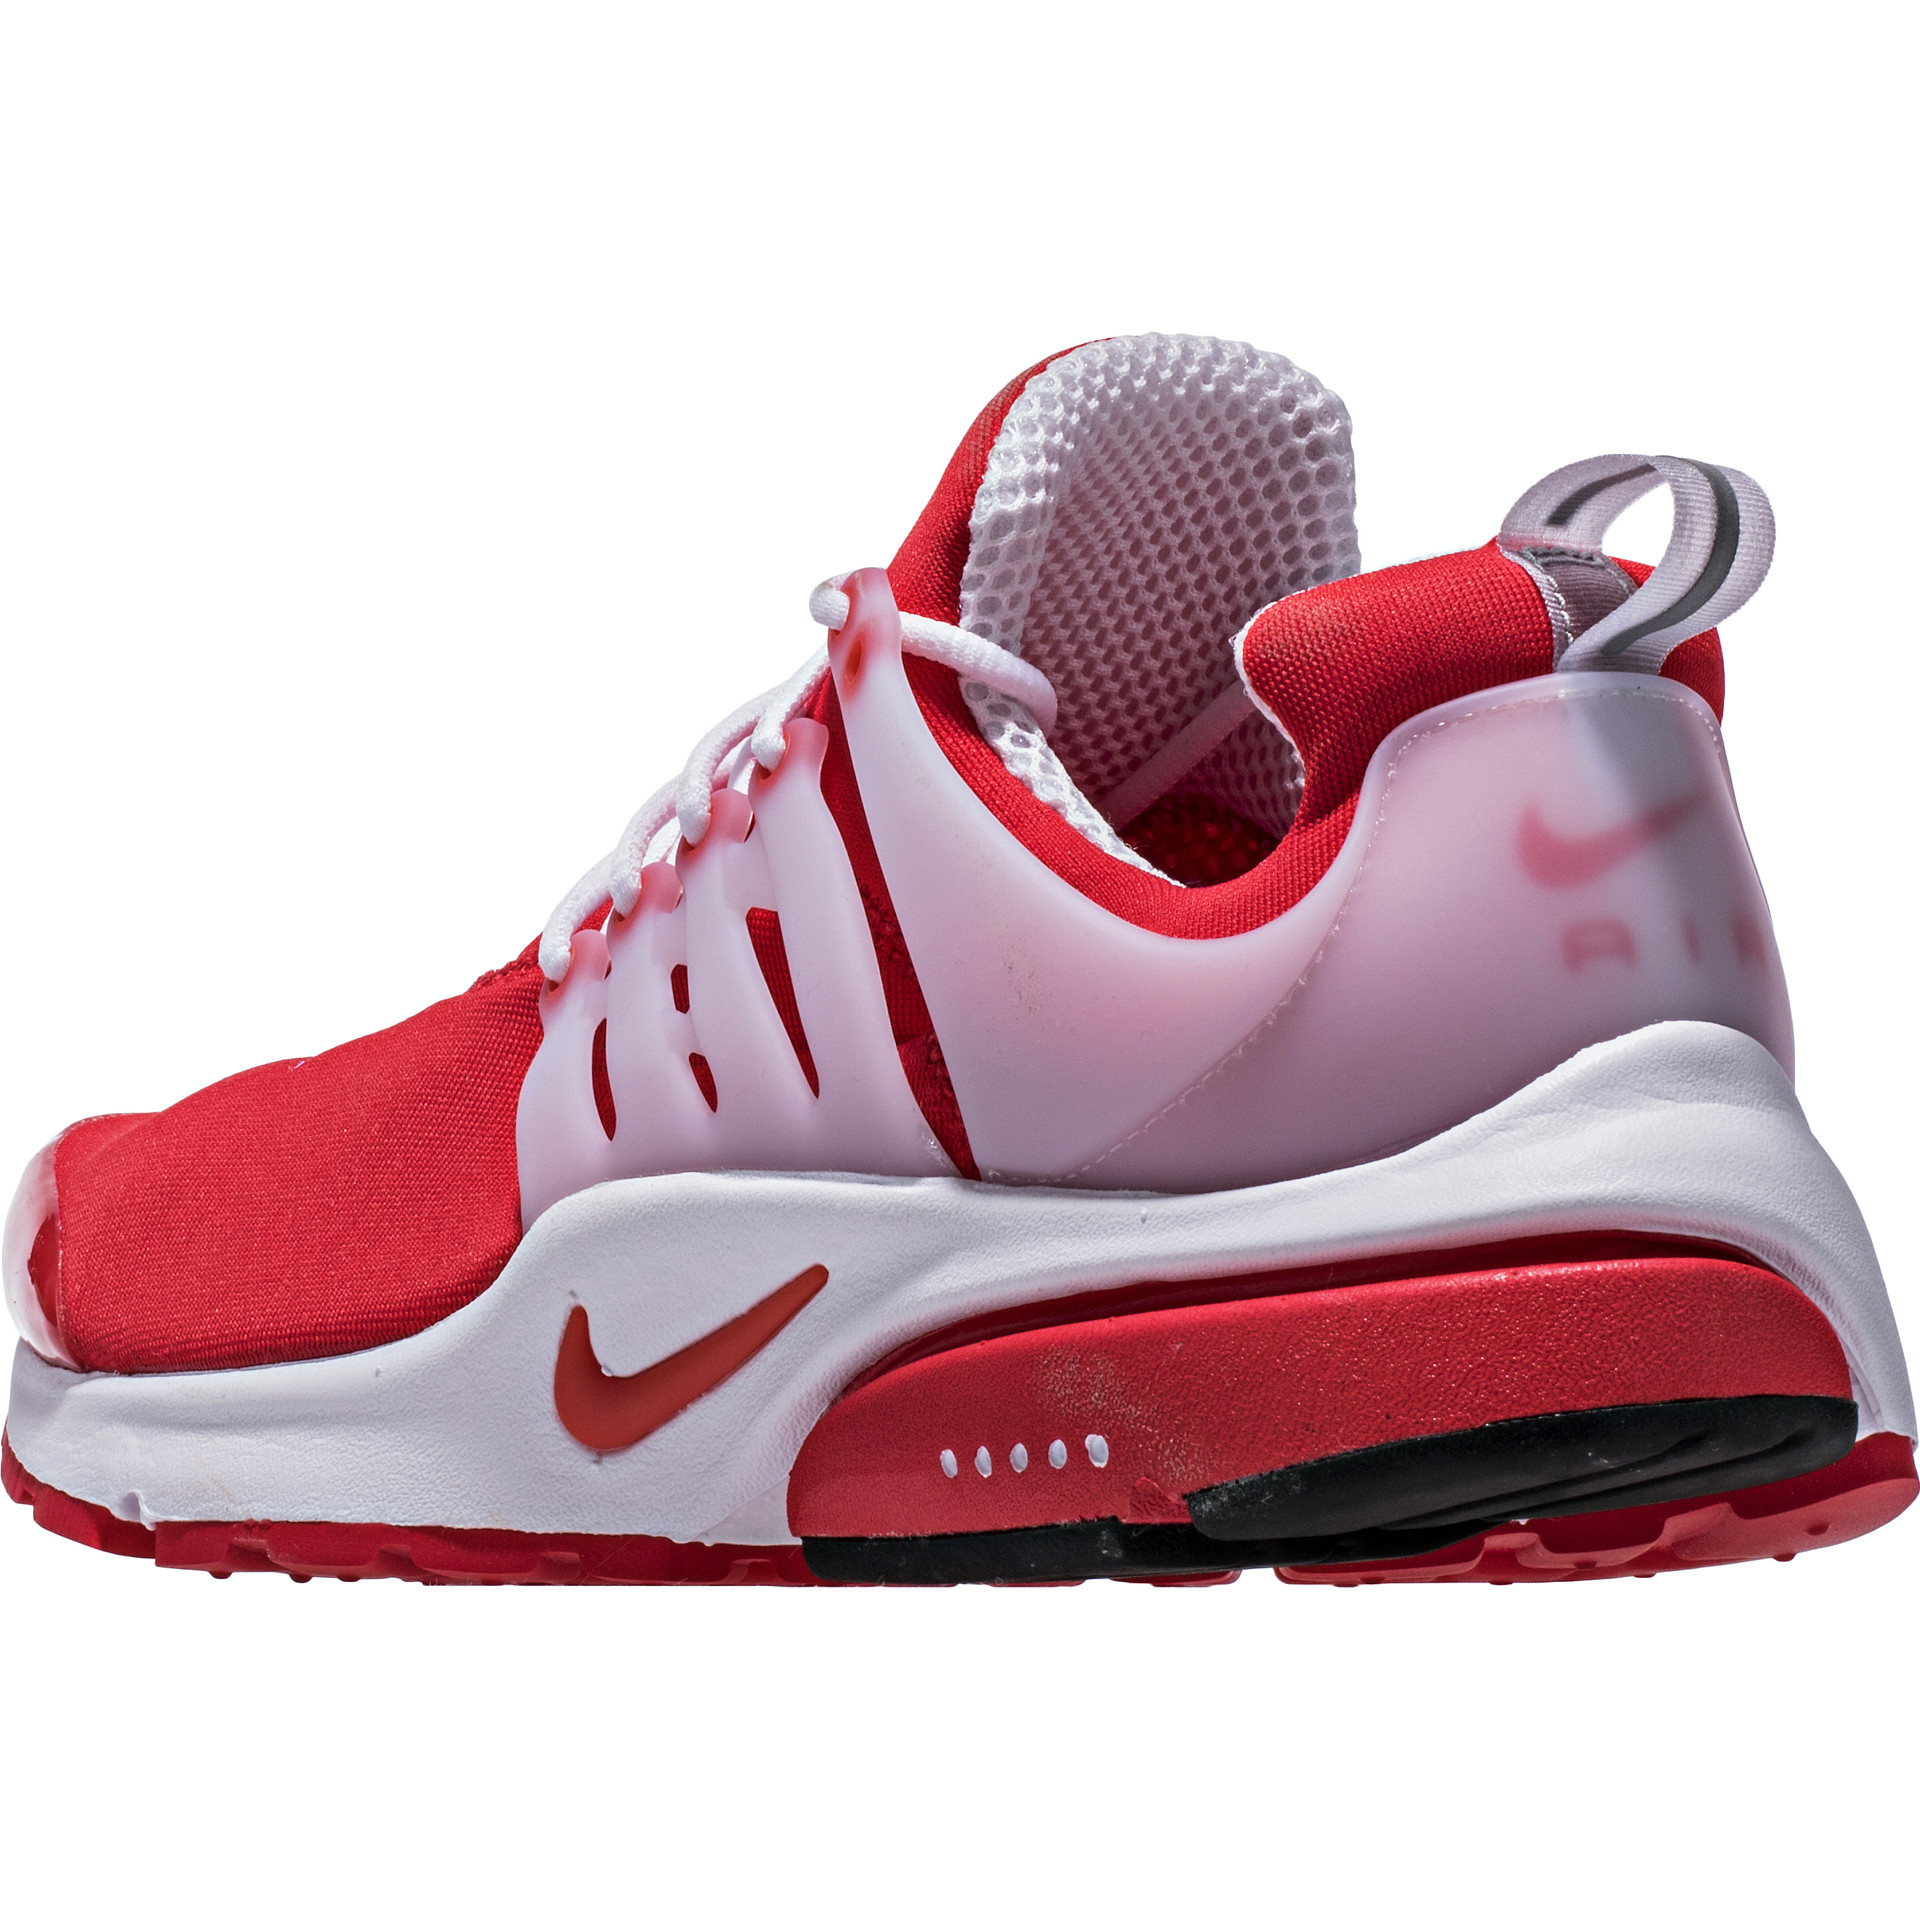 56a4de441cb Nike Air Presto Mens   Nike × Men and Women s shoes 2018 ...